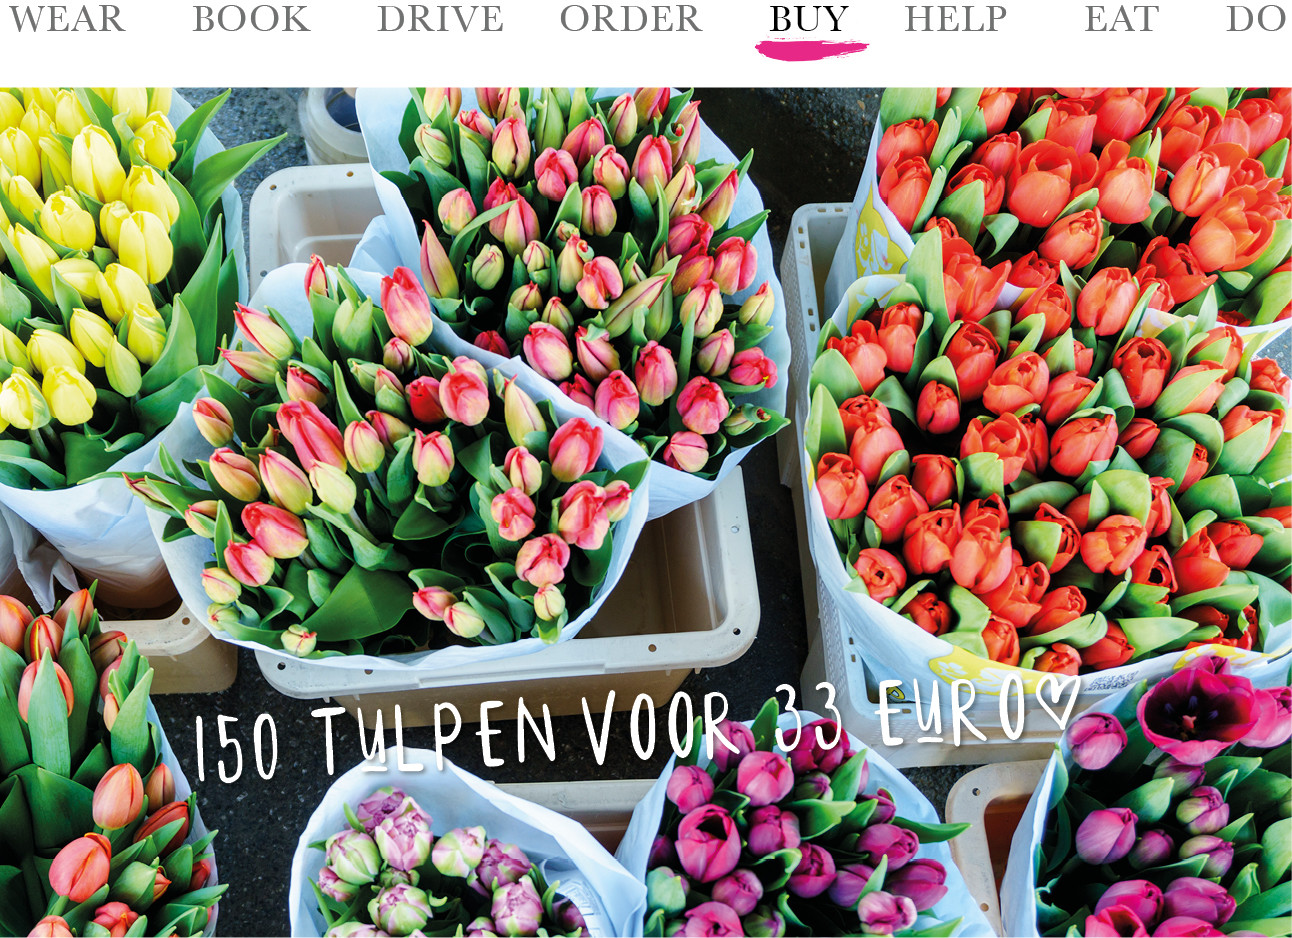 Today we buy 150 tulpen voor 33 euro